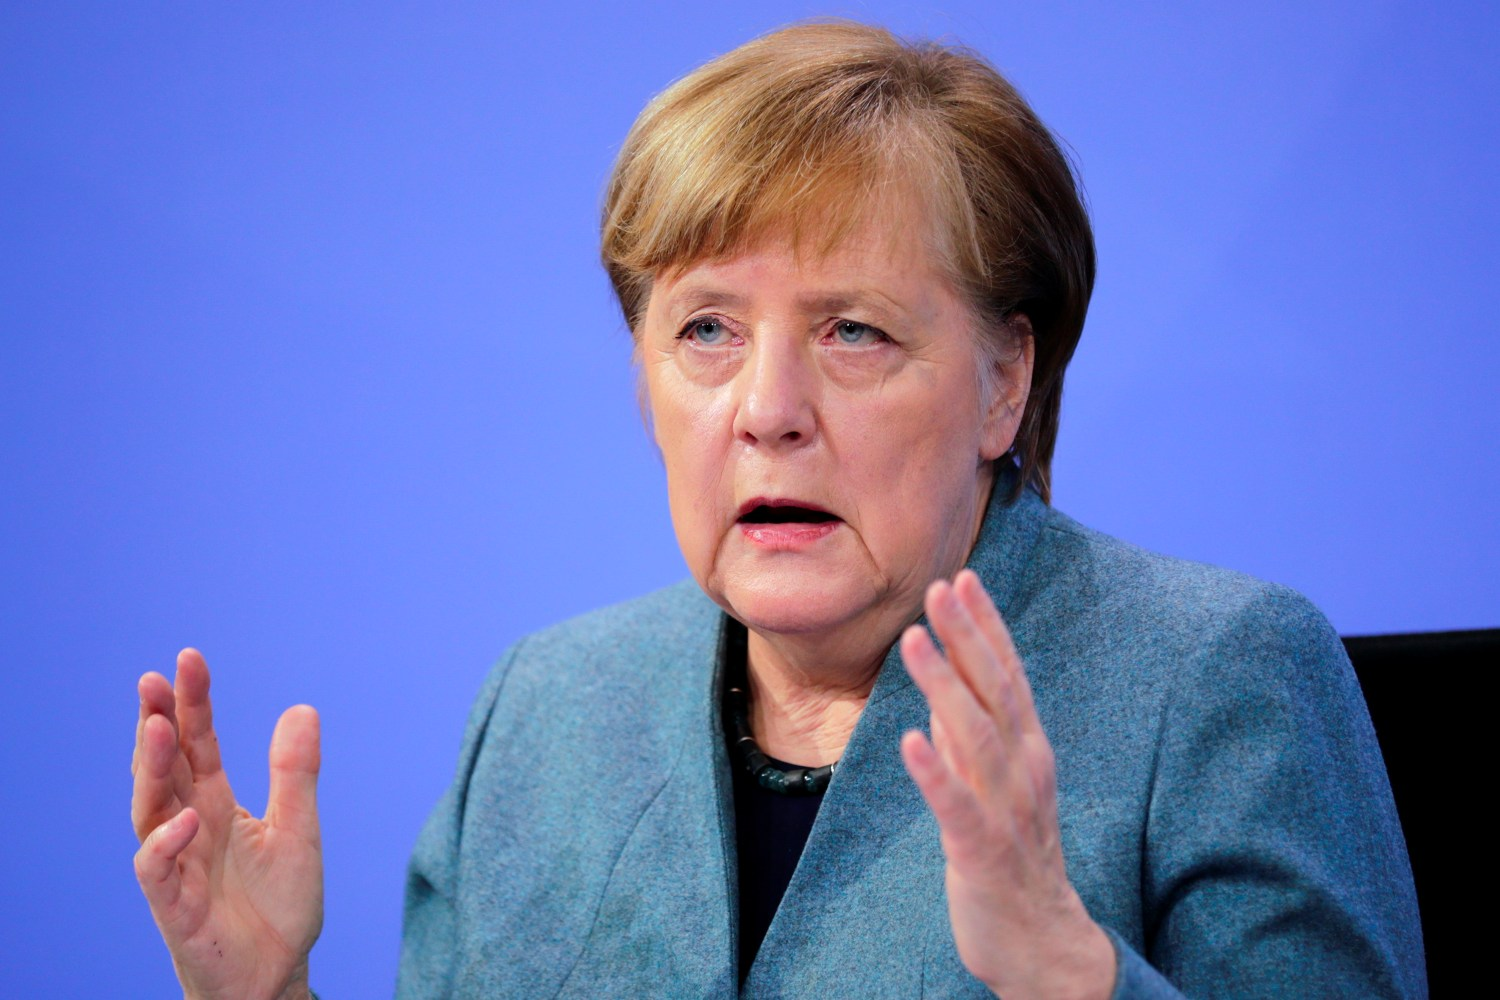 Merkel to give rare unscheduled TV interview on Germany's Covid-19 situation